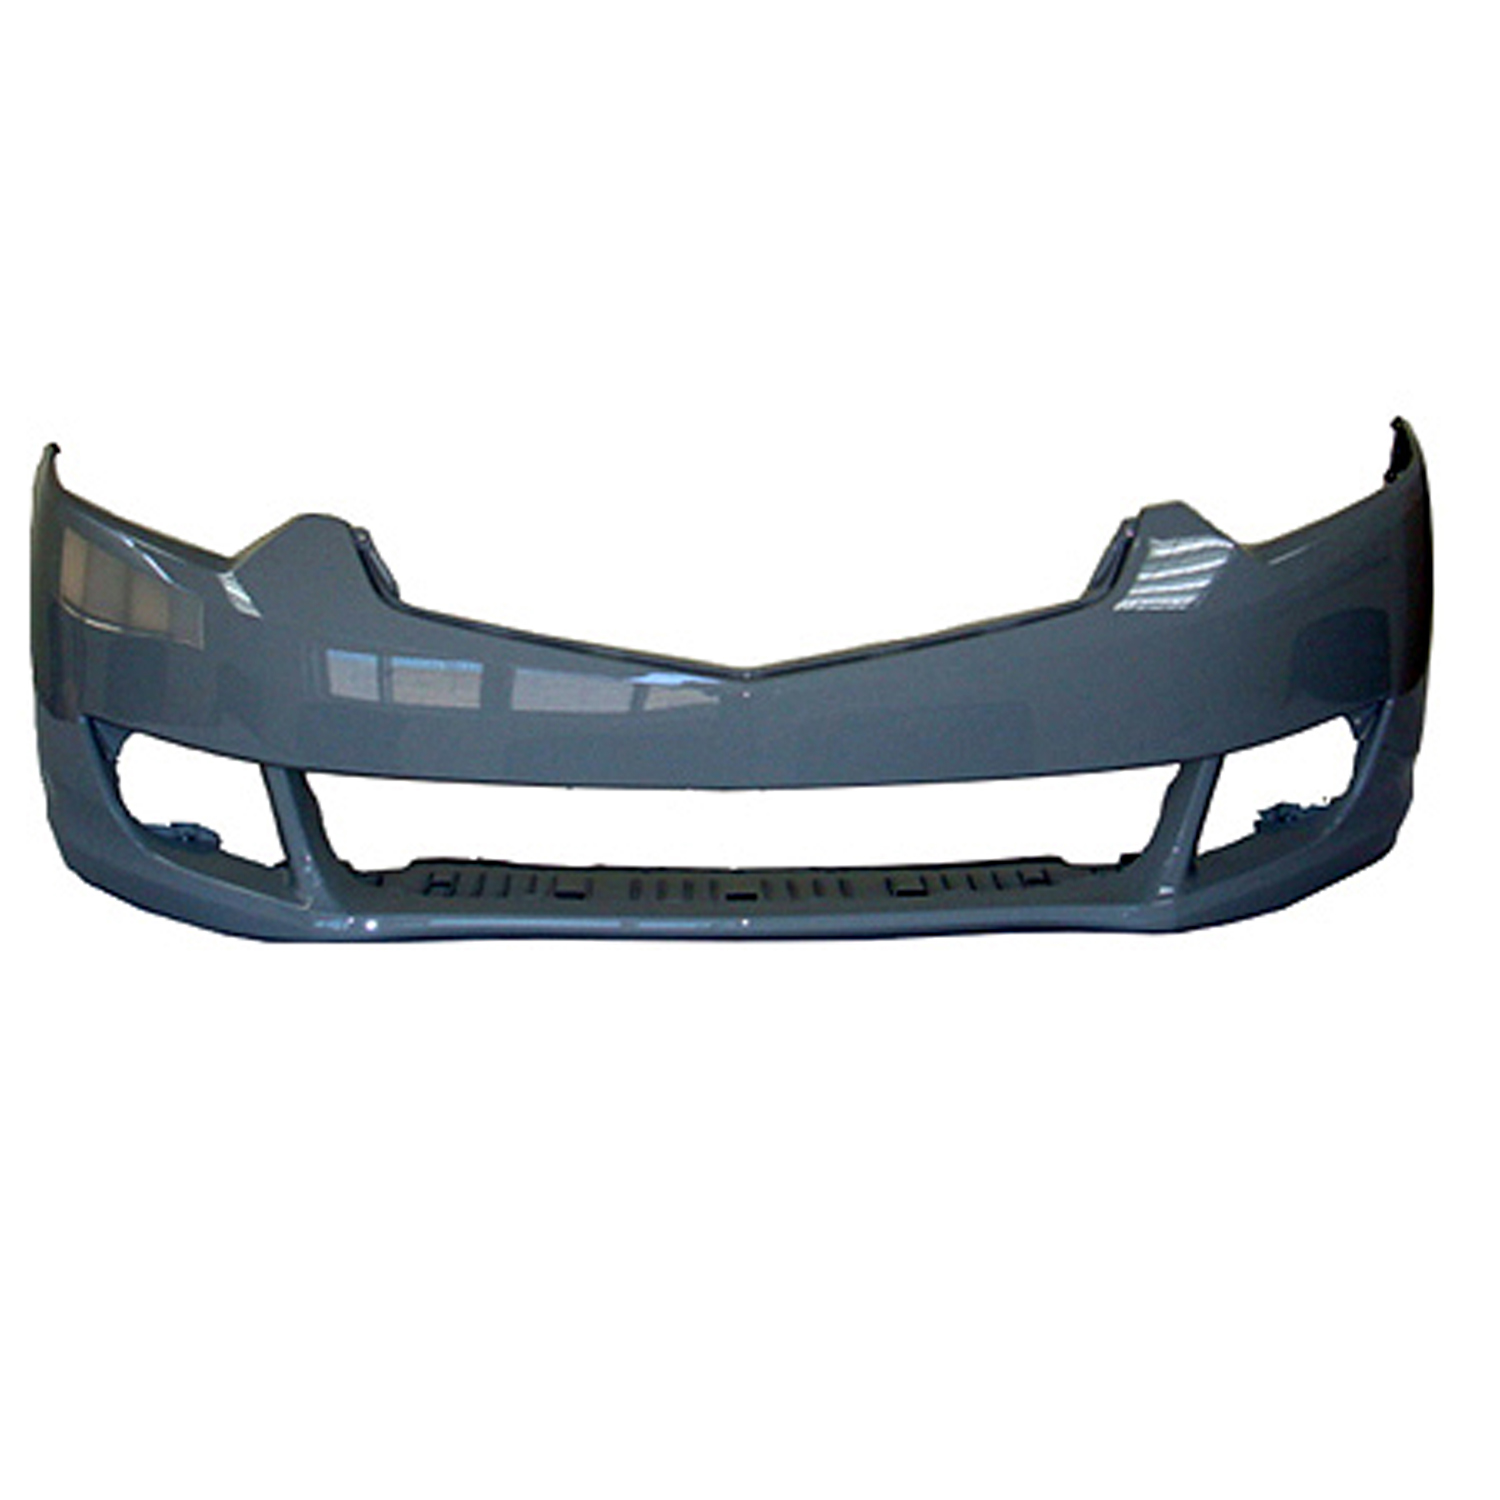 Fits 2009-2010 Acura TSX Front Bumper Cover 101-50528 CAPA